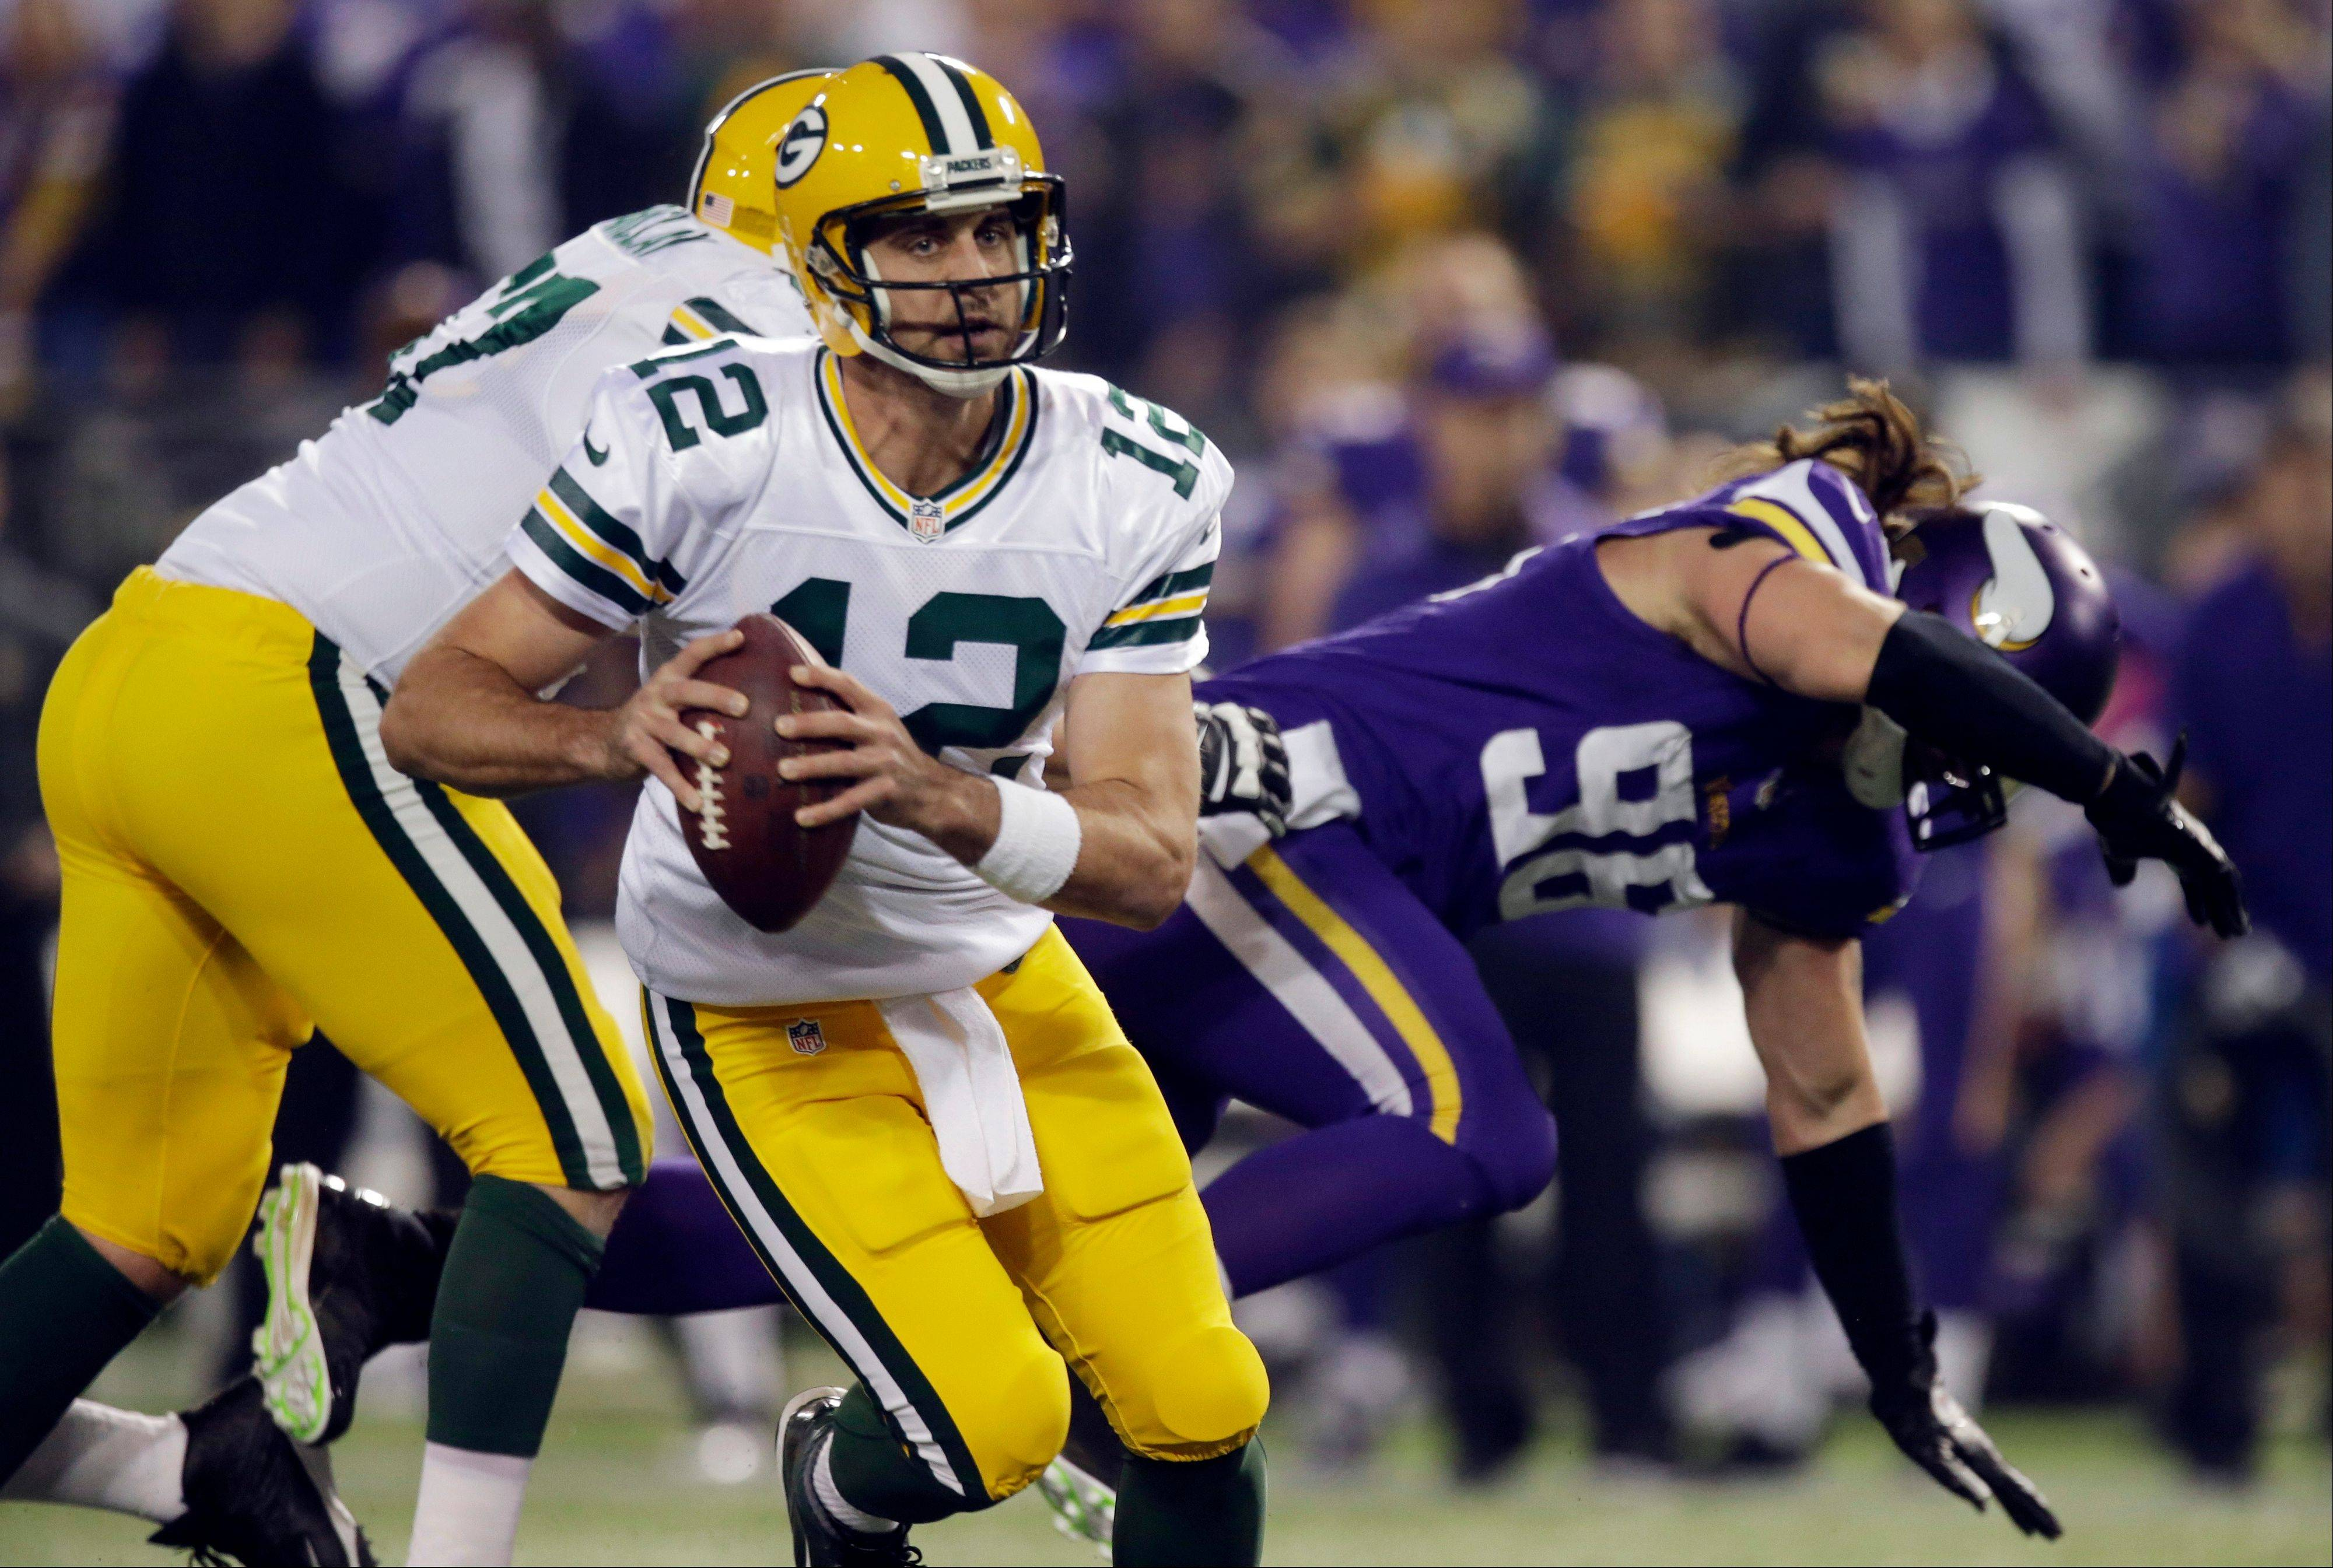 Green Bay Packers quarterback Aaron Rodgers (12) runs in the first half of an NFL football game against the Minnesota Vikings, Sunday, Oct. 27, 2013, in Minneapolis.